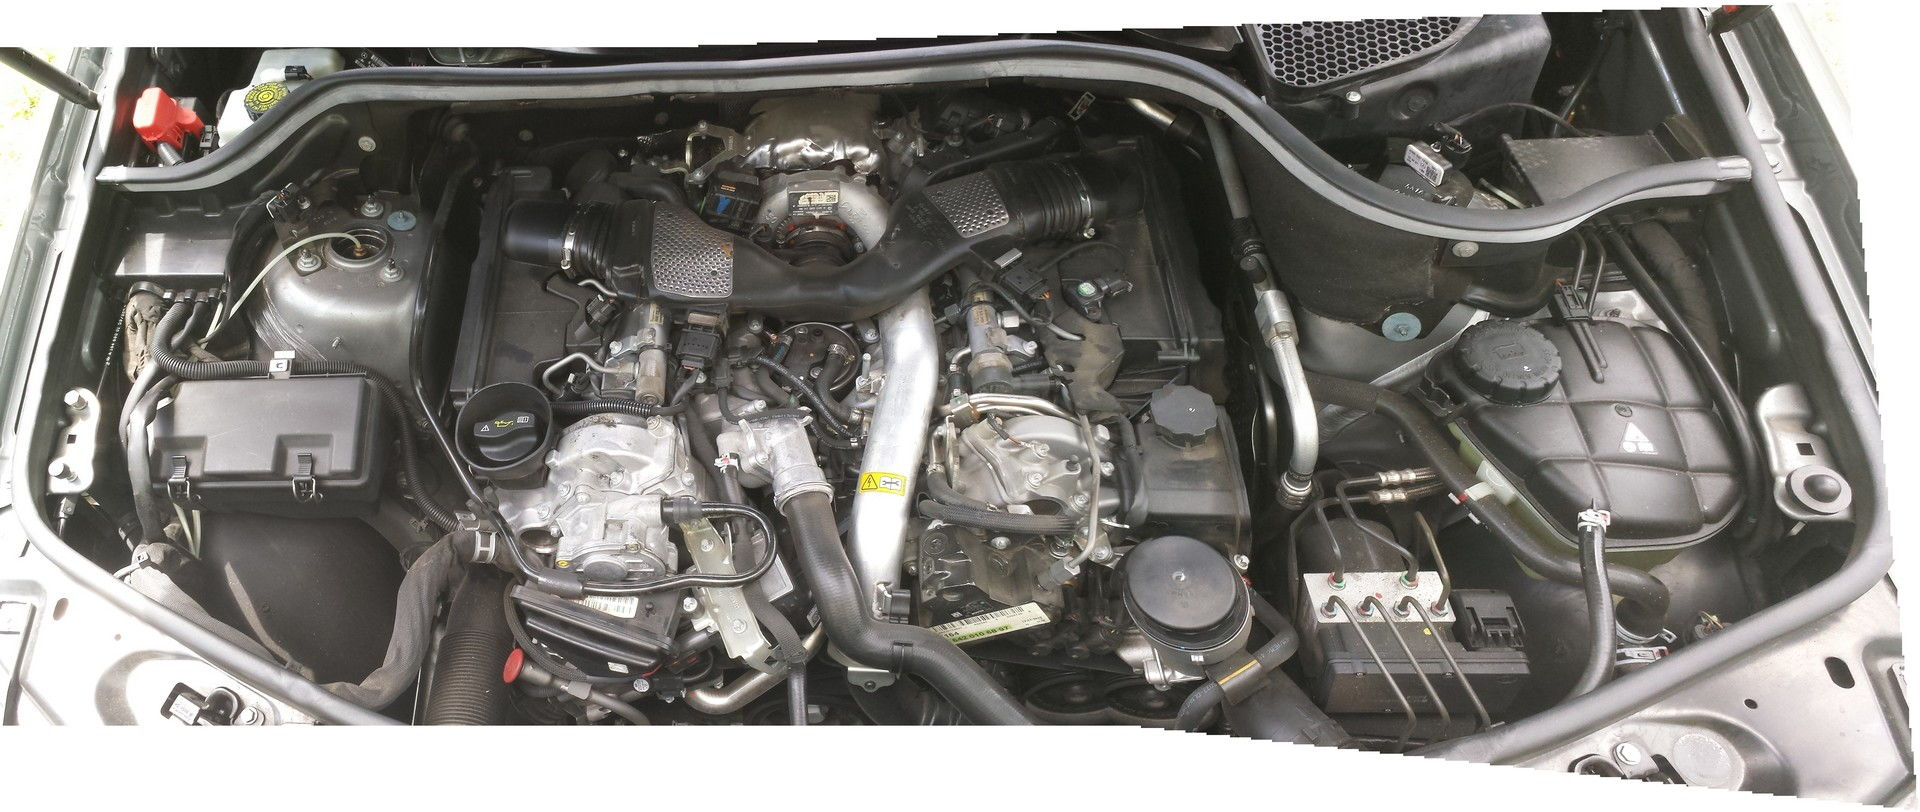 2007 ml350 engine diagram w164 where are glow plugs in photo mbworld org forums 2007 dodge engine diagram #9